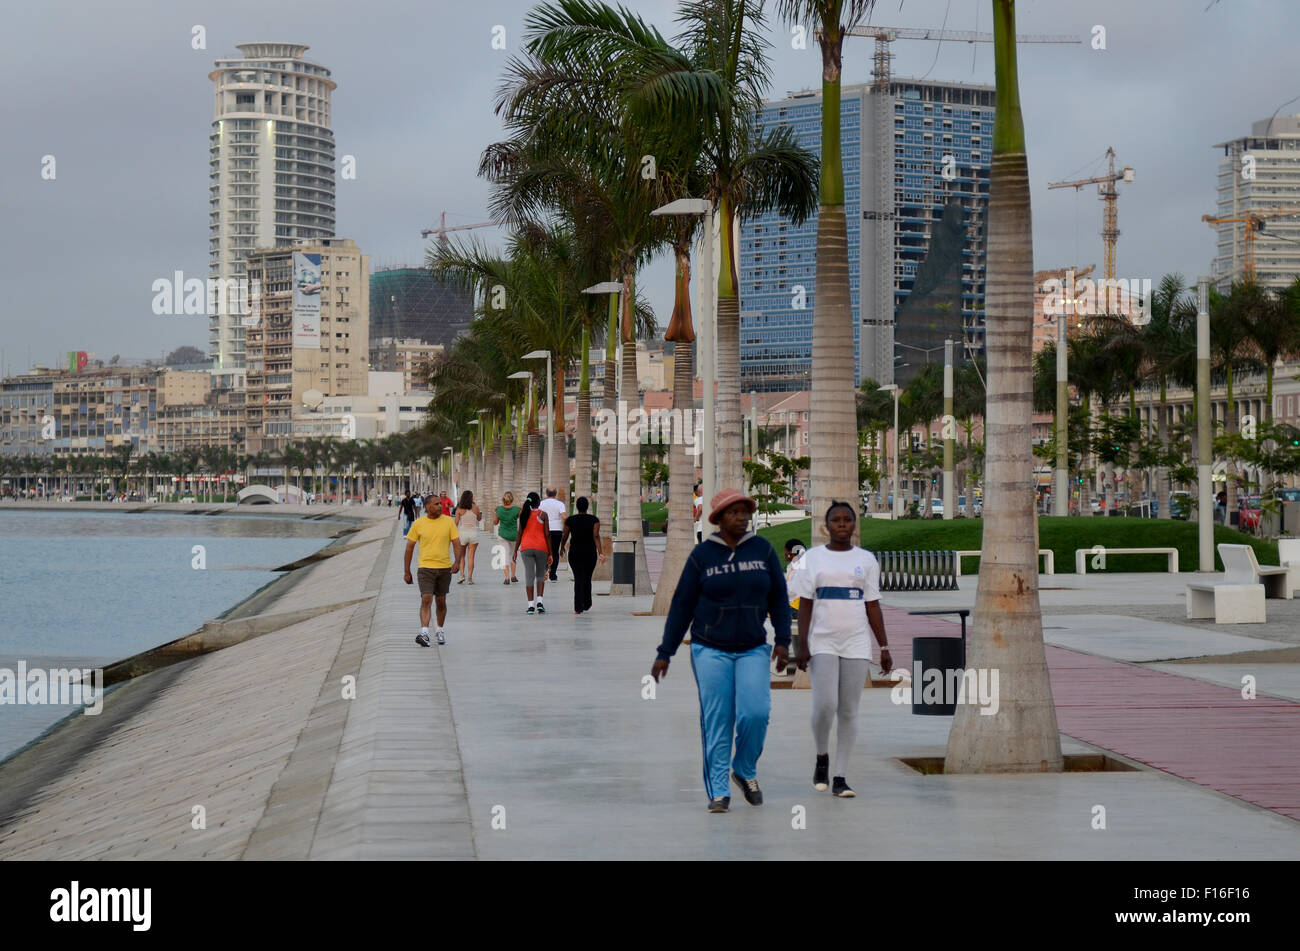 ANGOLA Luanda, sea promenade, due to revenues from oil and diamond exports a construction boom is seen everywhere Stock Photo